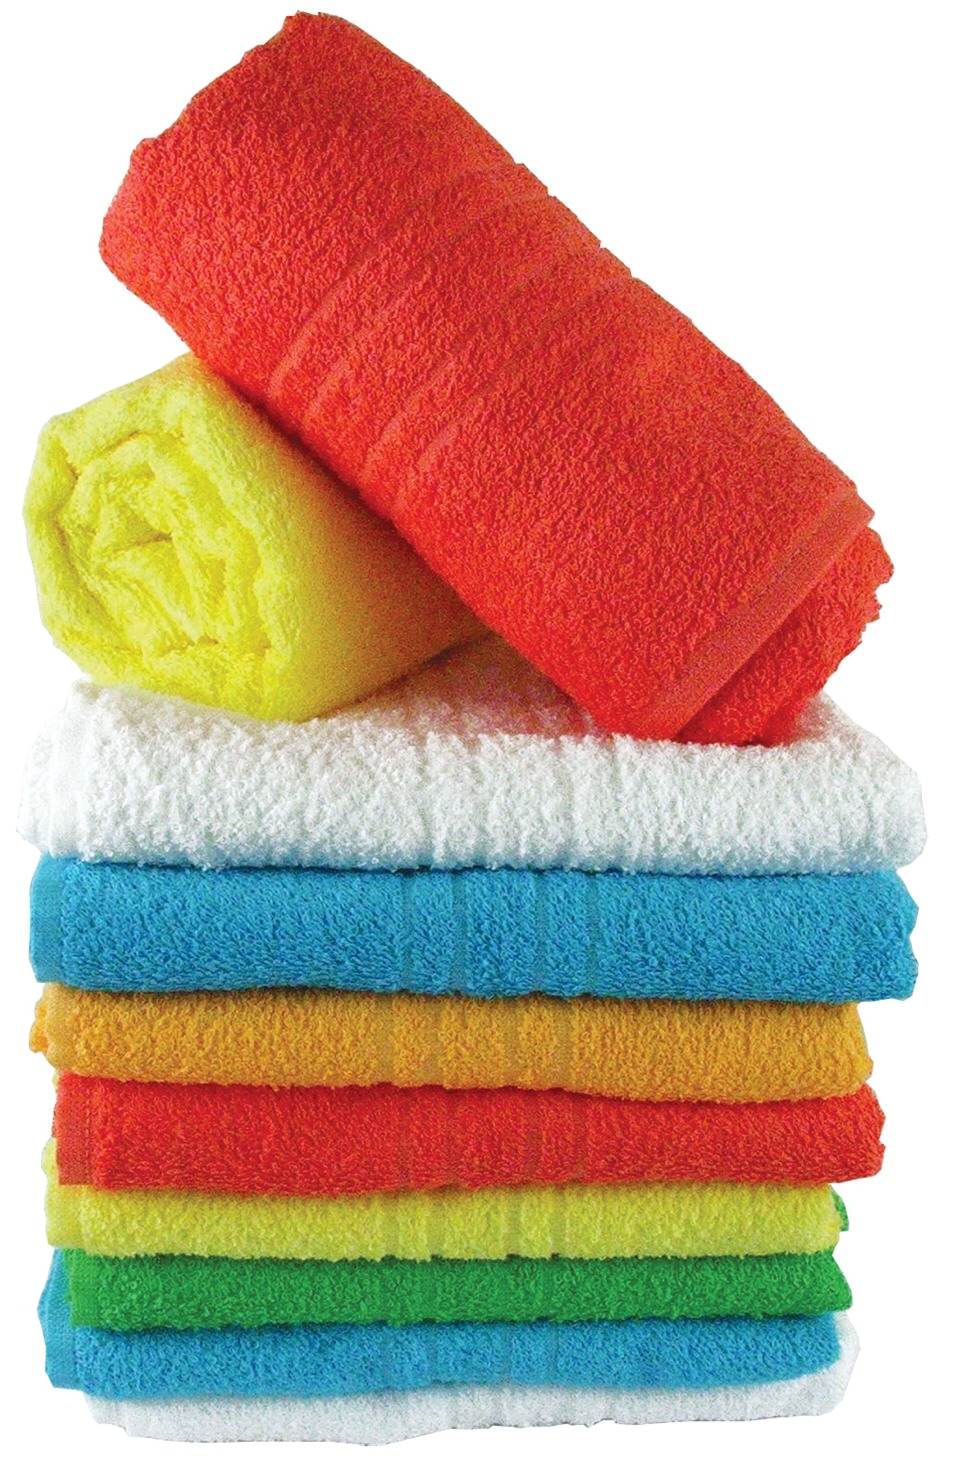 When washing new towels, always add a cup of salt to the water. The salt will set the color so the towels won't fade as quickly.